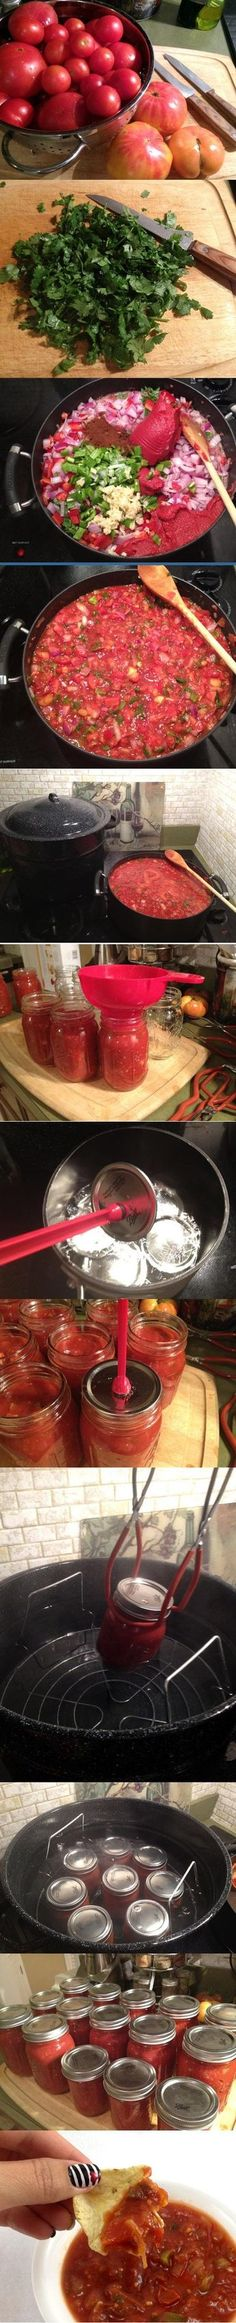 Making Homemade Salsa and Canning Step-by-Step How To Instructions.my DIL makes wonderful homemade canned salsa! Canning Homemade Salsa, Canning Recipes, Canning Tips, Great Recipes, Favorite Recipes, Healthy Recipes, Do It Yourself Food, Canned Food Storage, Home Canning